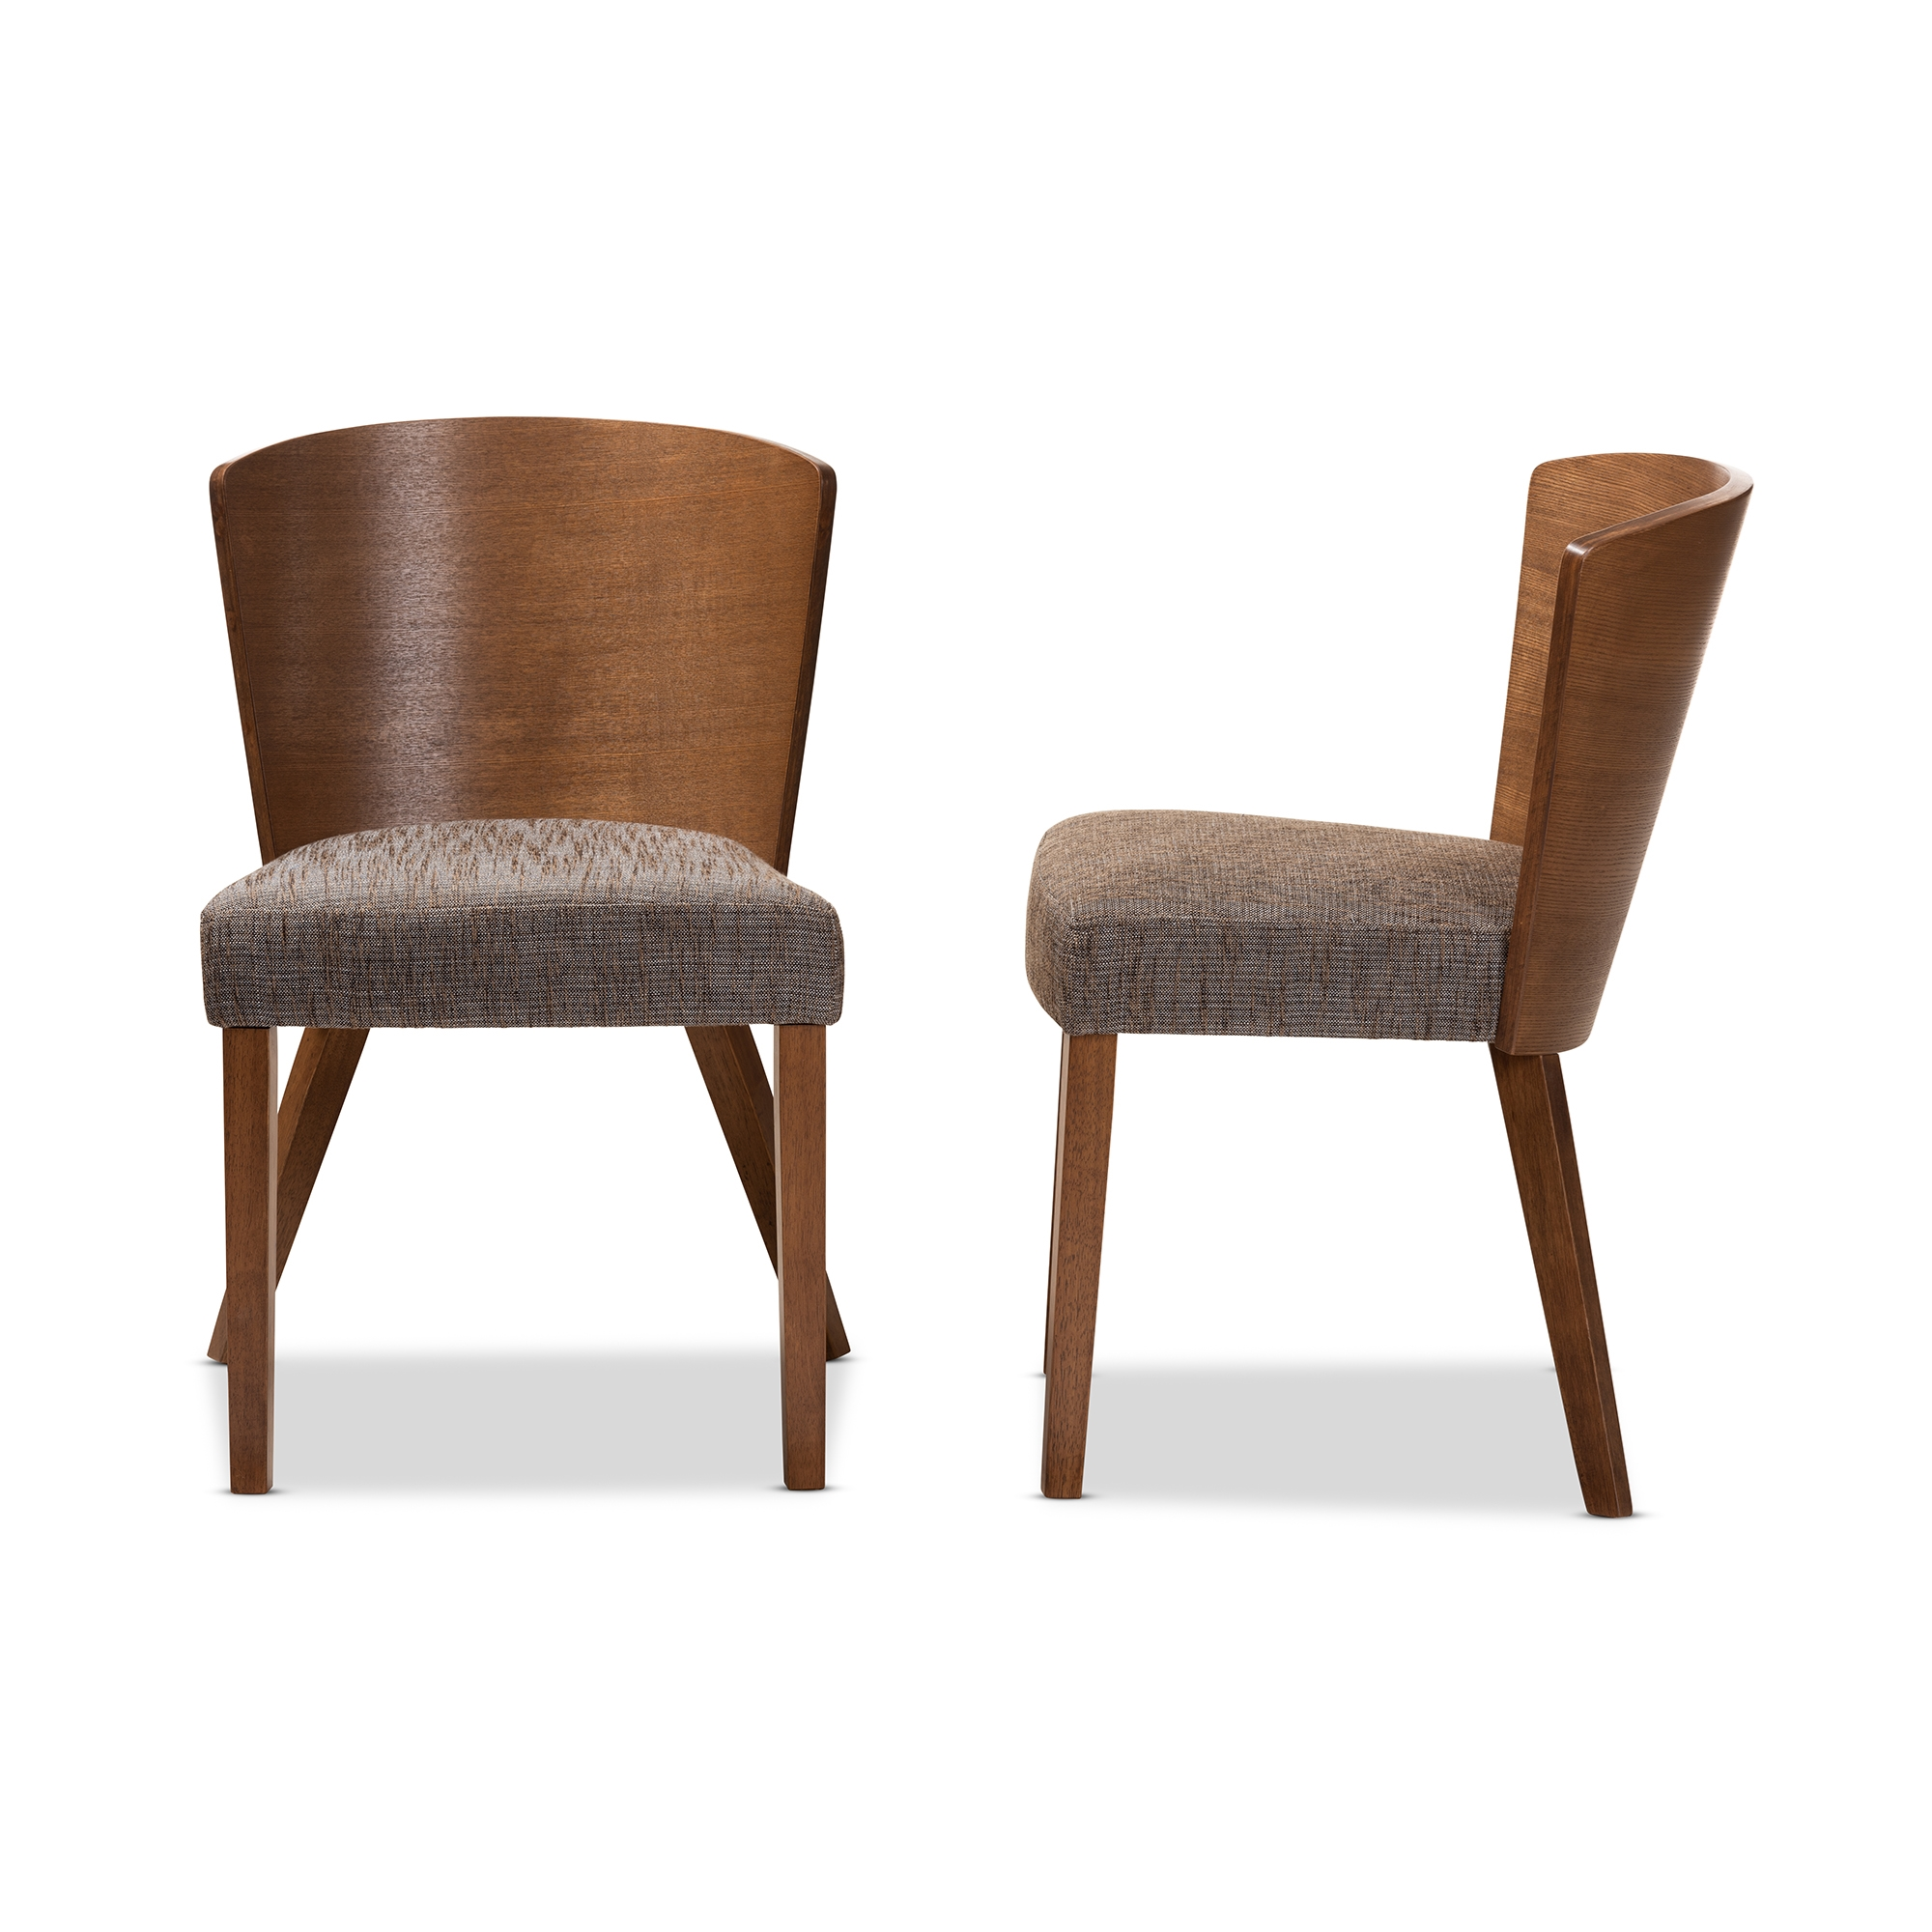 Baxton Studio Sparrow Brown Wood Modern Dining Chair Set  : SPARROW DINING CHAIR 109 690 3 from www.wholesale-interiors.com size 1000 x 1000 jpeg 206kB